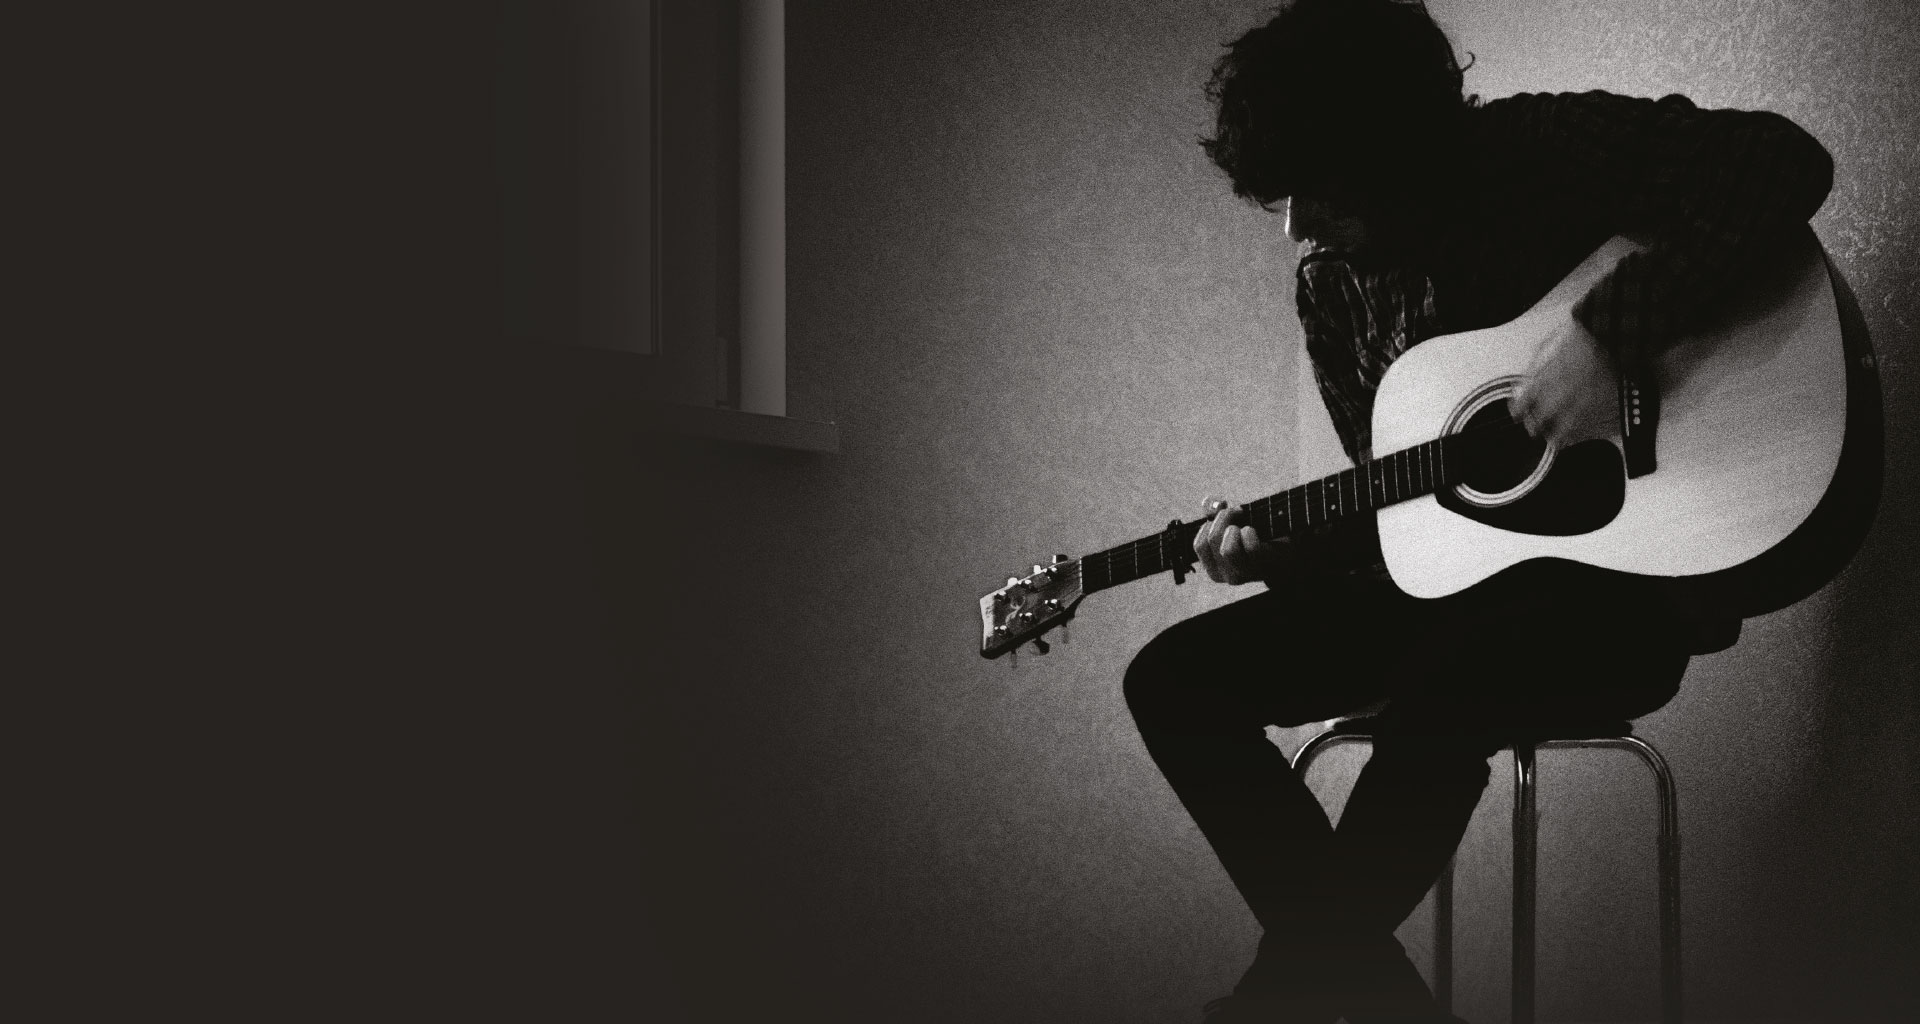 A man playing the guitar.